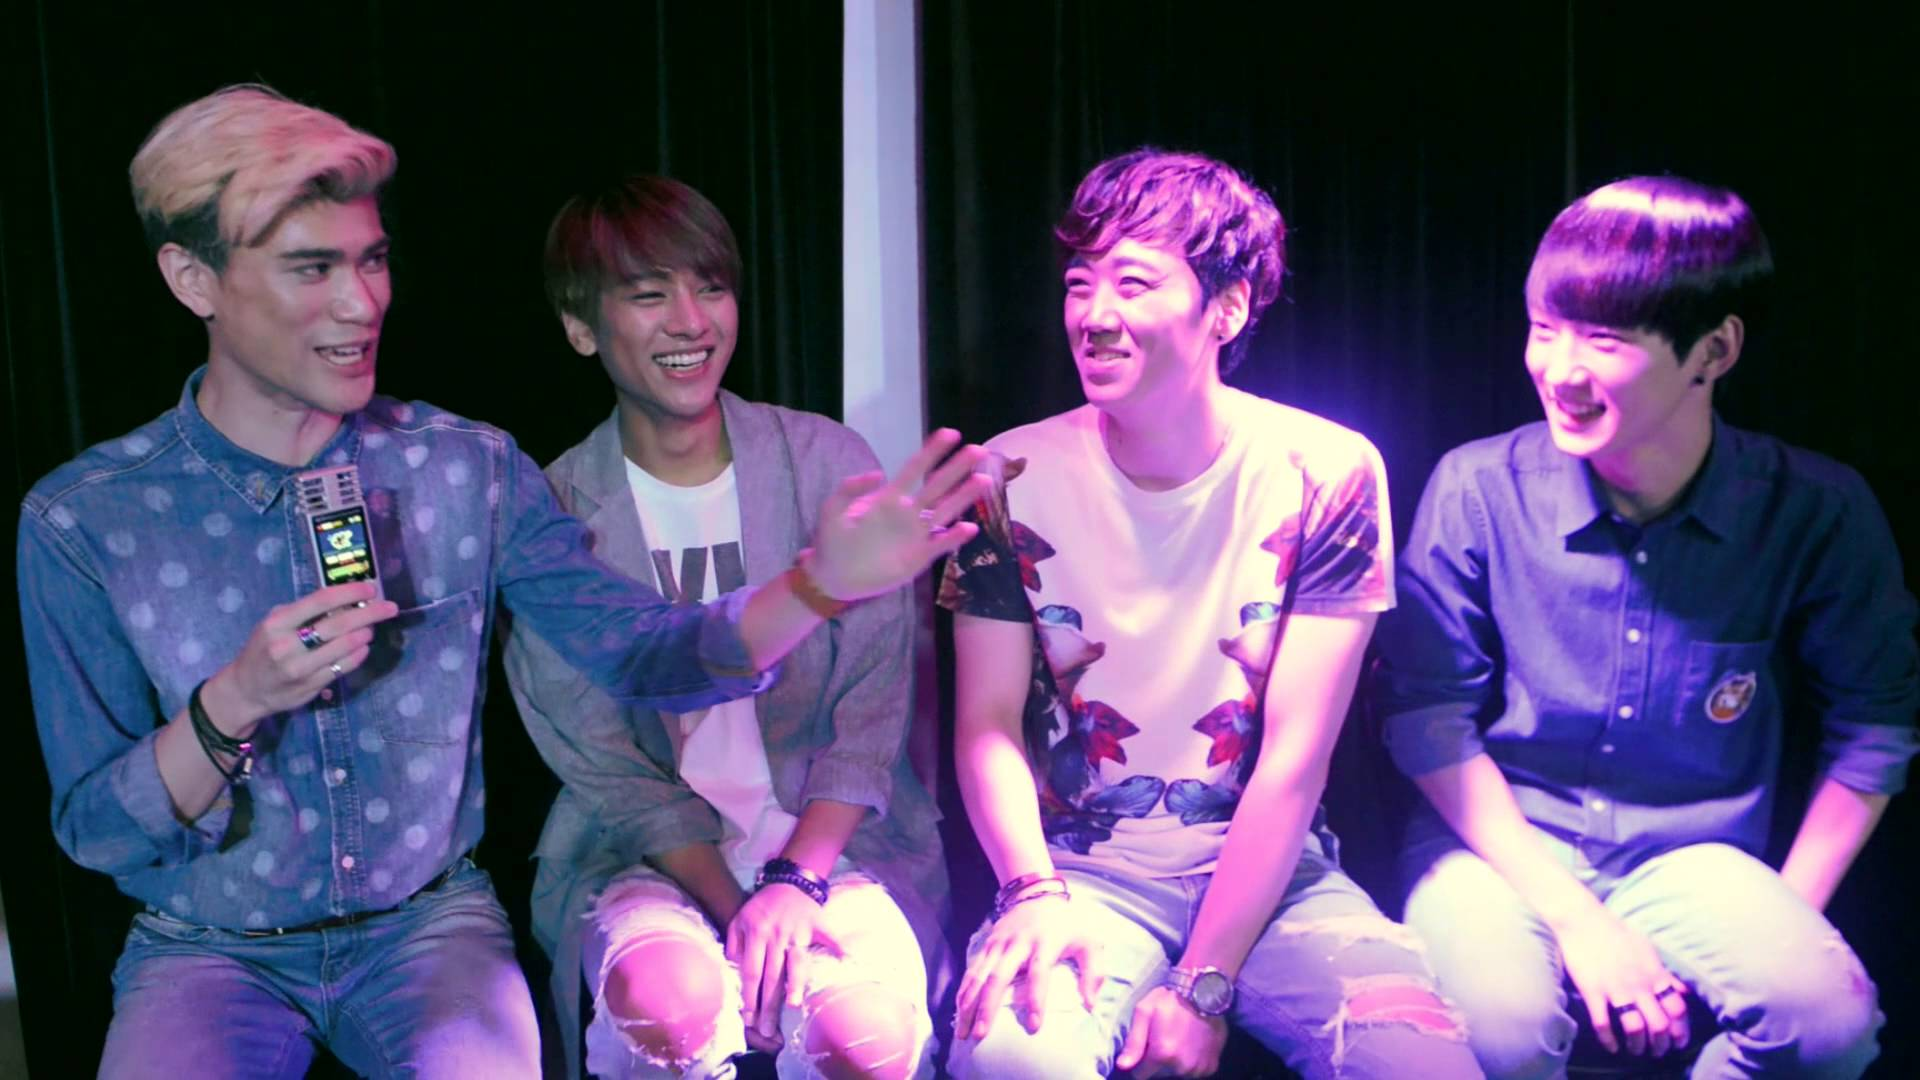 Interview: LUNAFLY (South Korea) talk to us about Einstein, Drag Queens and Sam's chest hair